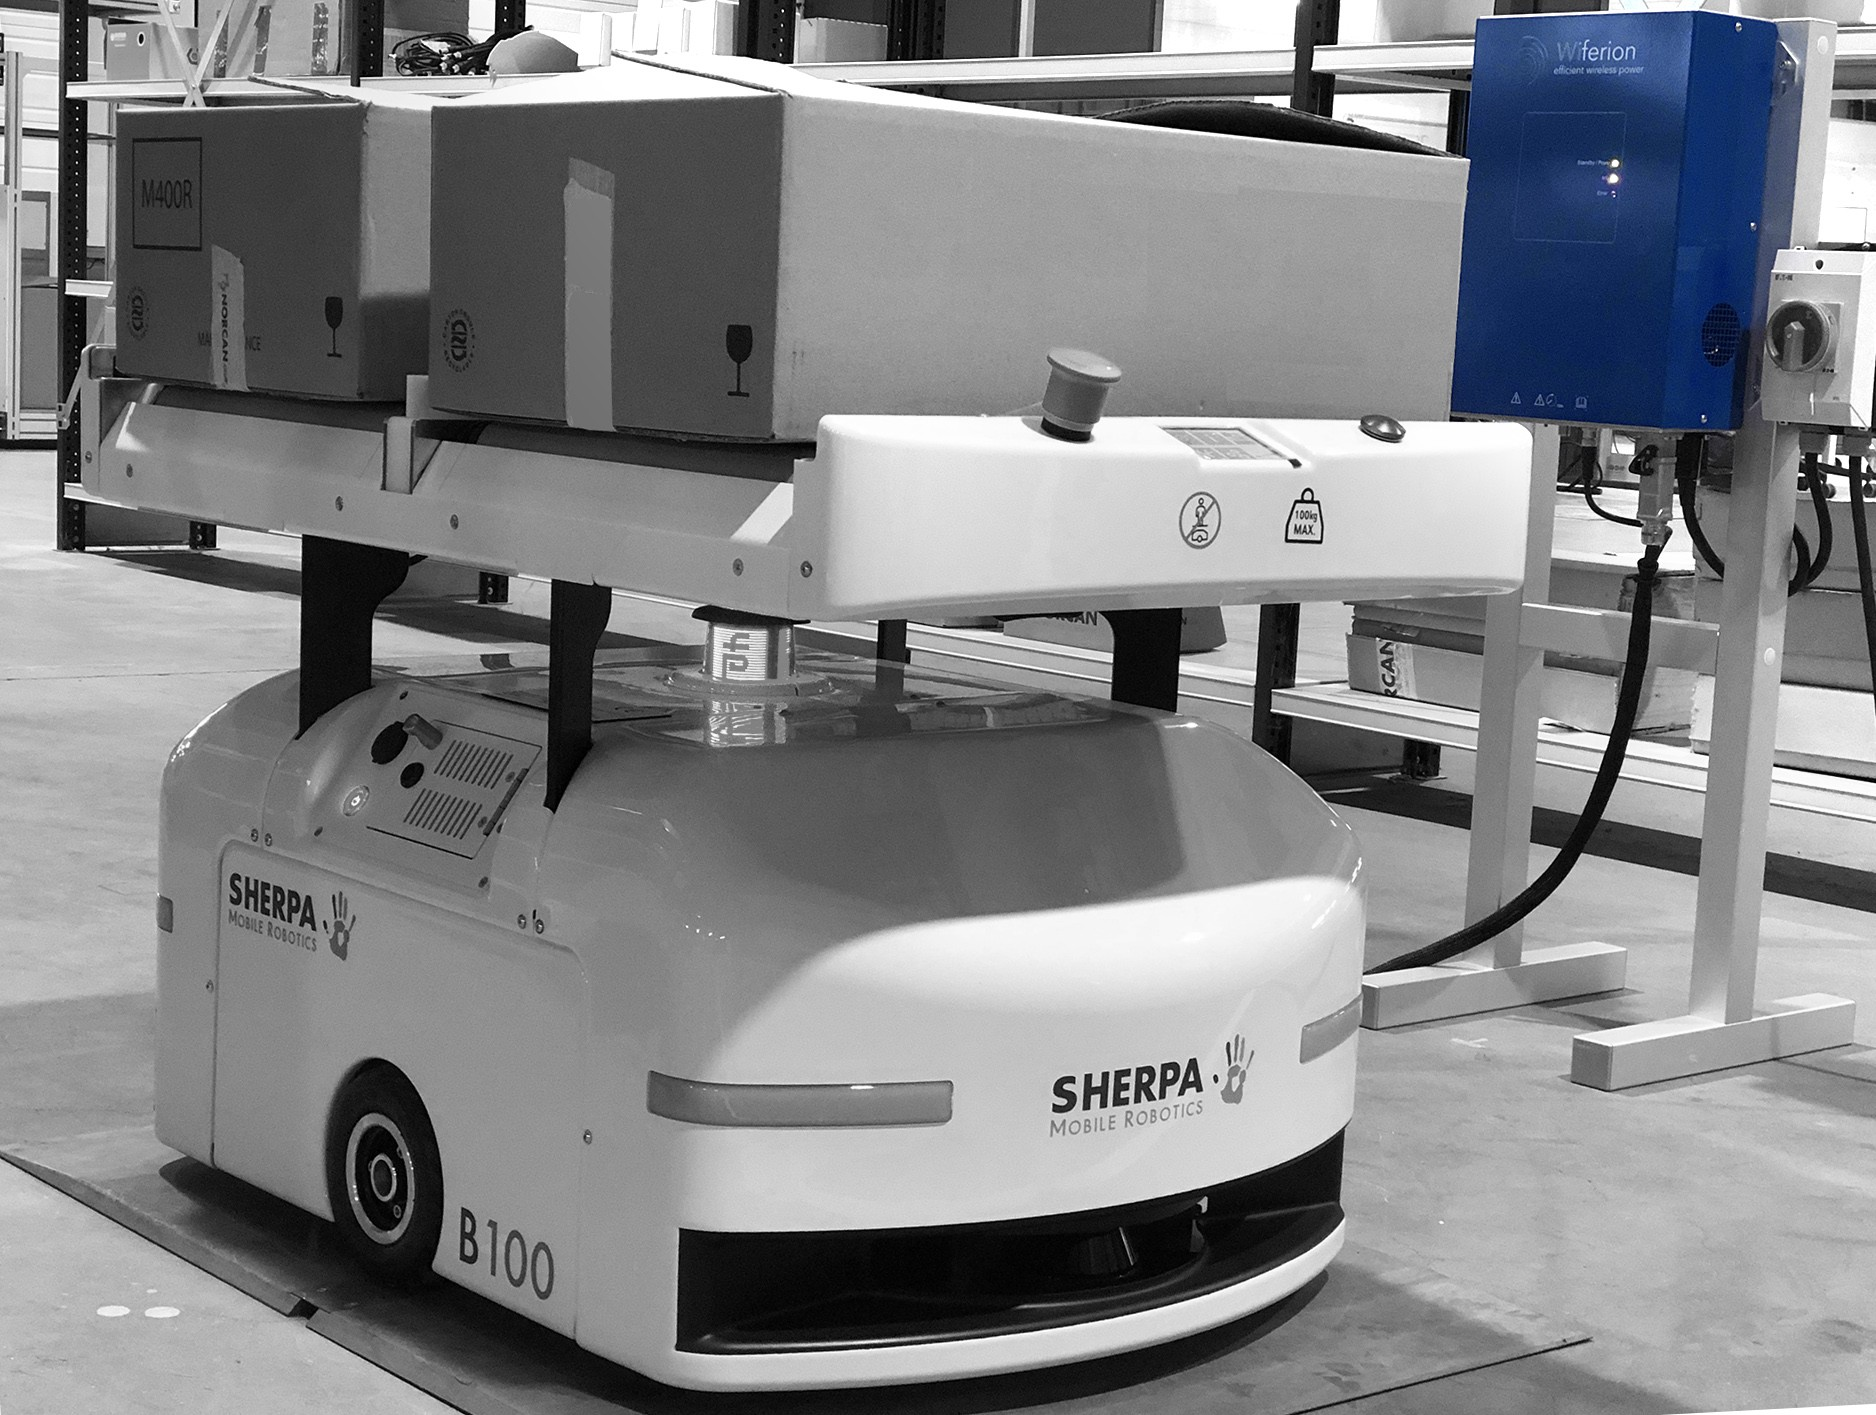 sherpa wiferion - agv wireless charging station / ladestation